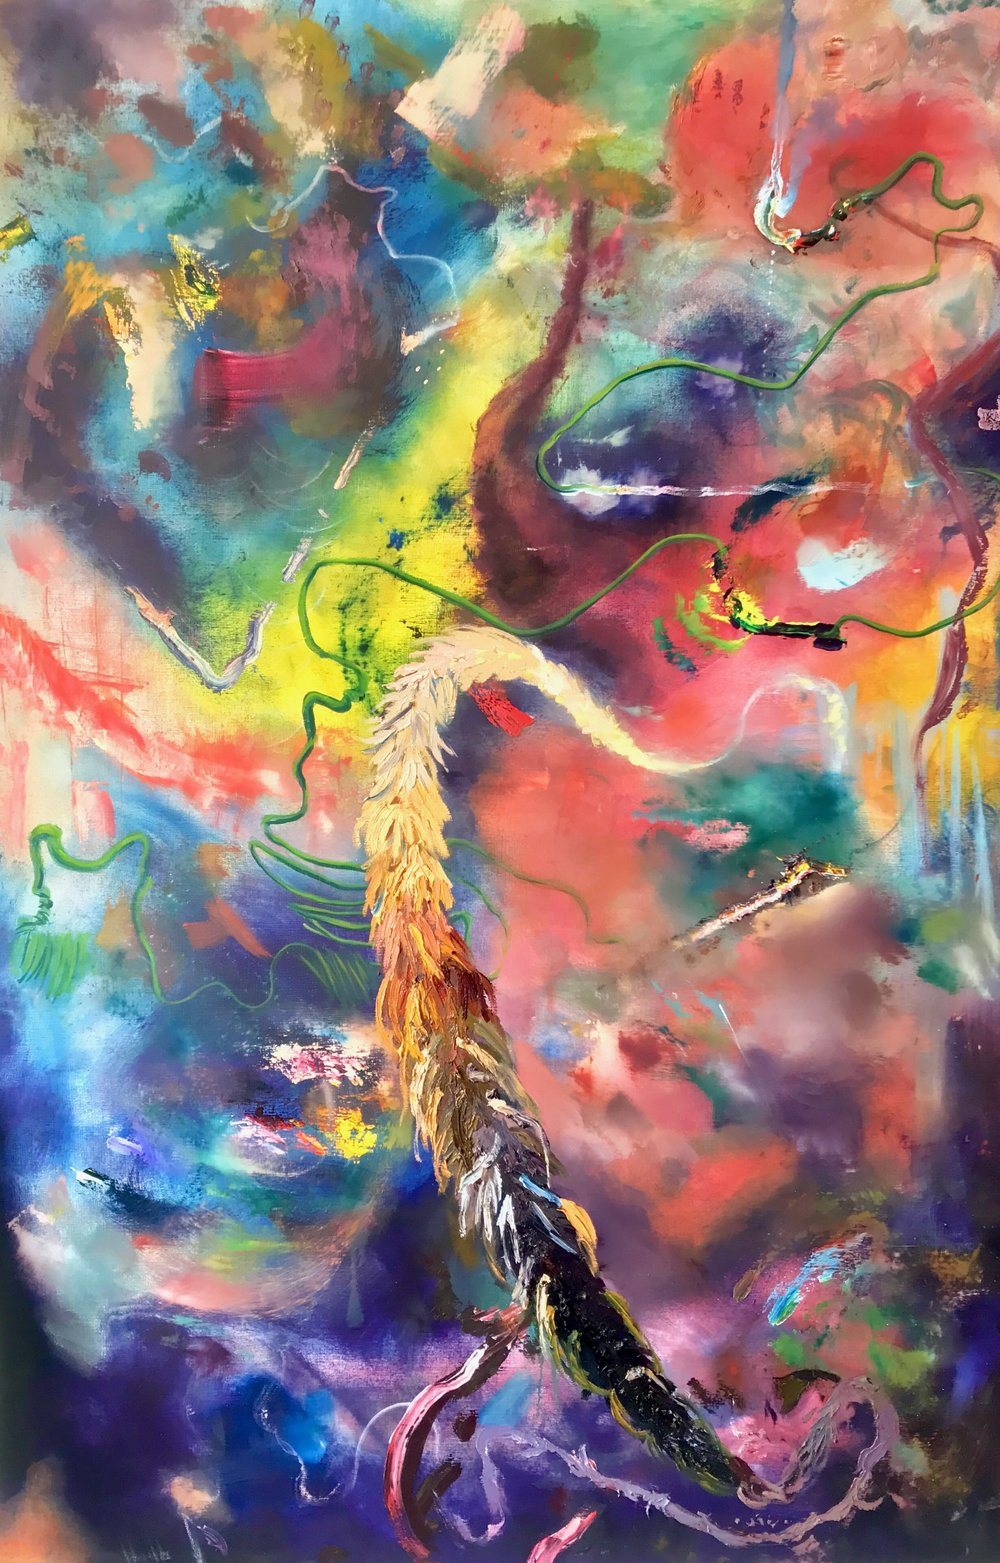 WHEN I CLOSE MY EYES, oil on canvas, 48 x 72 inches, 2018